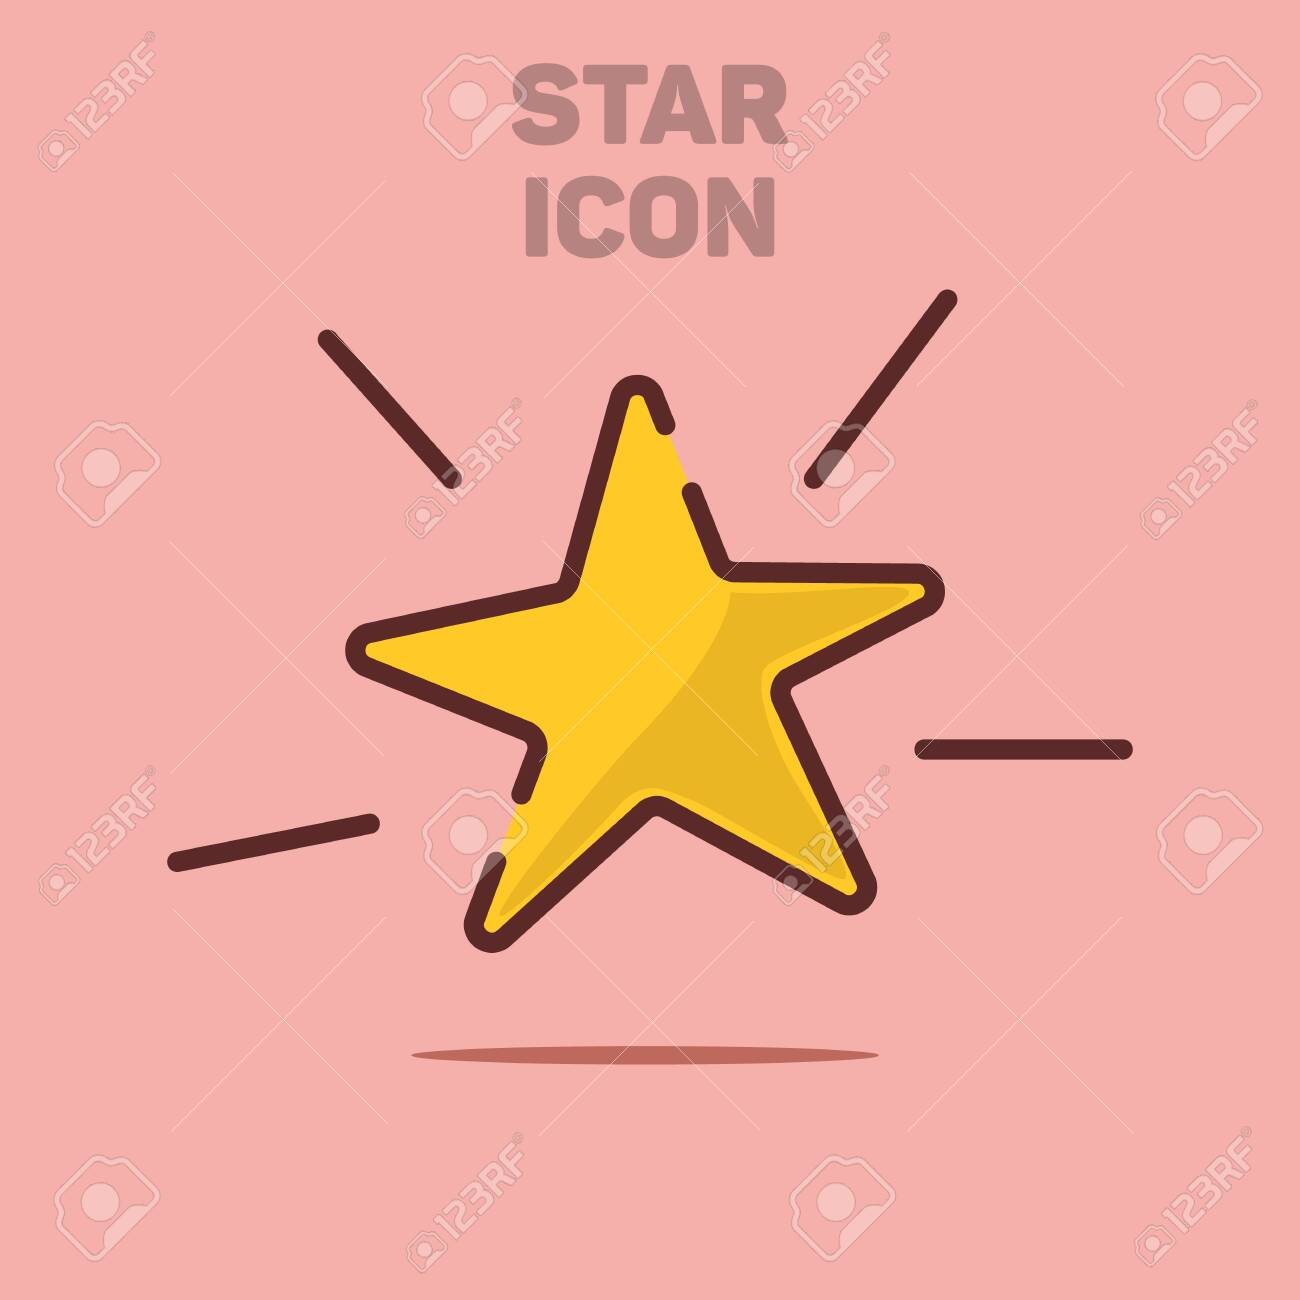 Isolated Flat Star Icon Vector Illustration Background - 132039528